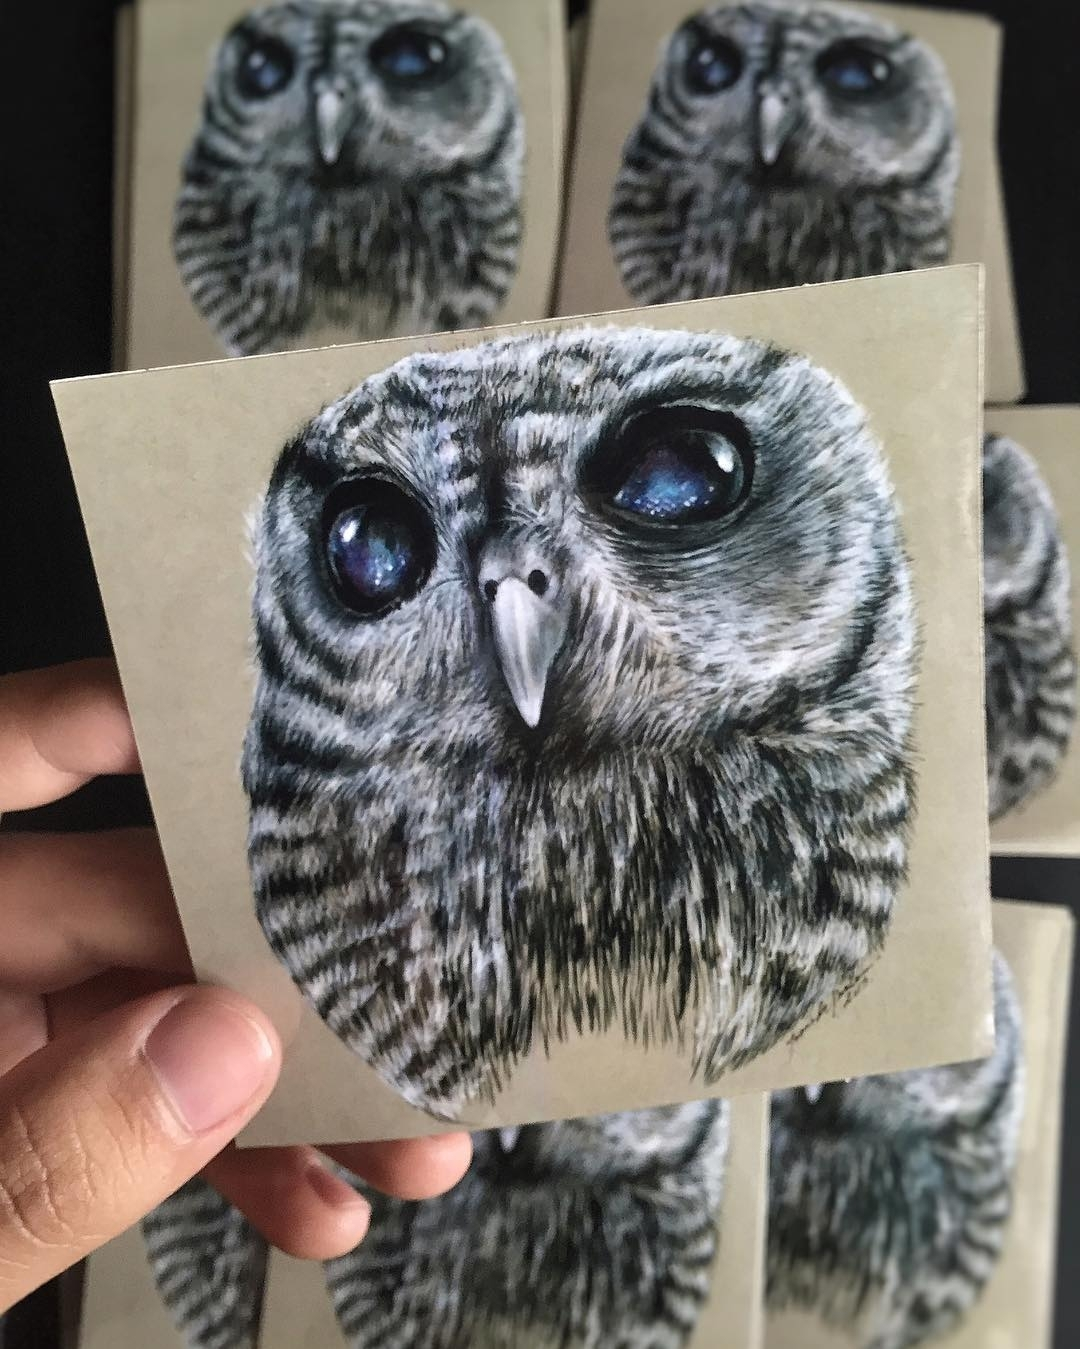 18-Zeus-the-Owl-Jonathan-Martinez-Art-of-the-Endangered-Paintings-and-Drawings-www-designstack-co